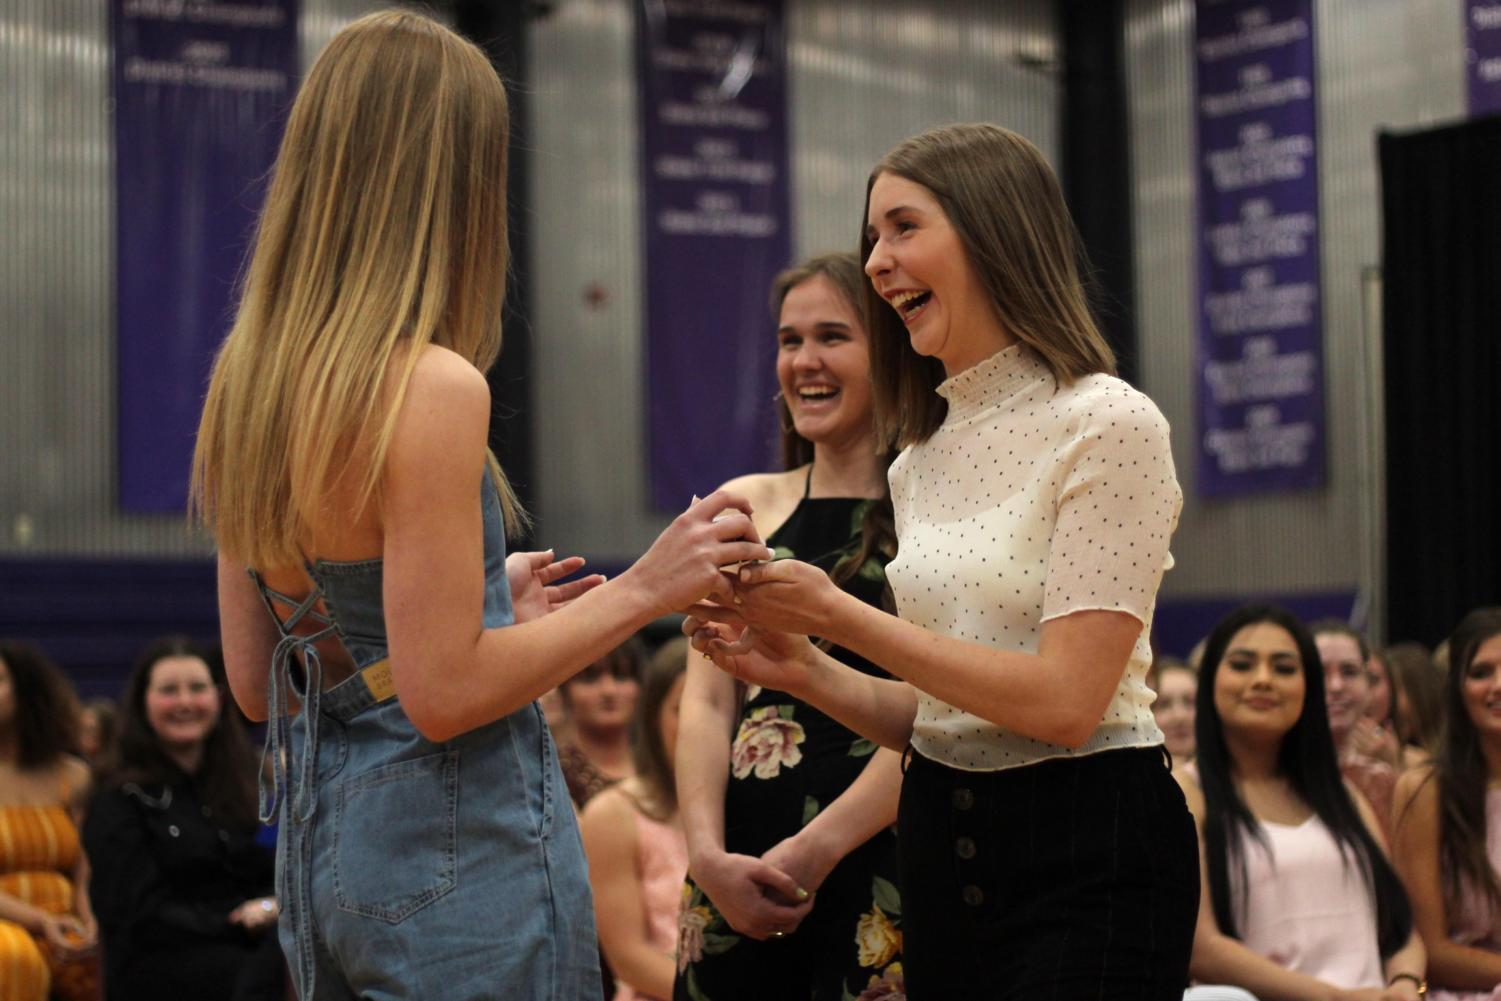 Seniors Emily Koca and Lily Muehlbach present junior Libby Slaymaker with her class ring at the junior ring ceremony April 11.